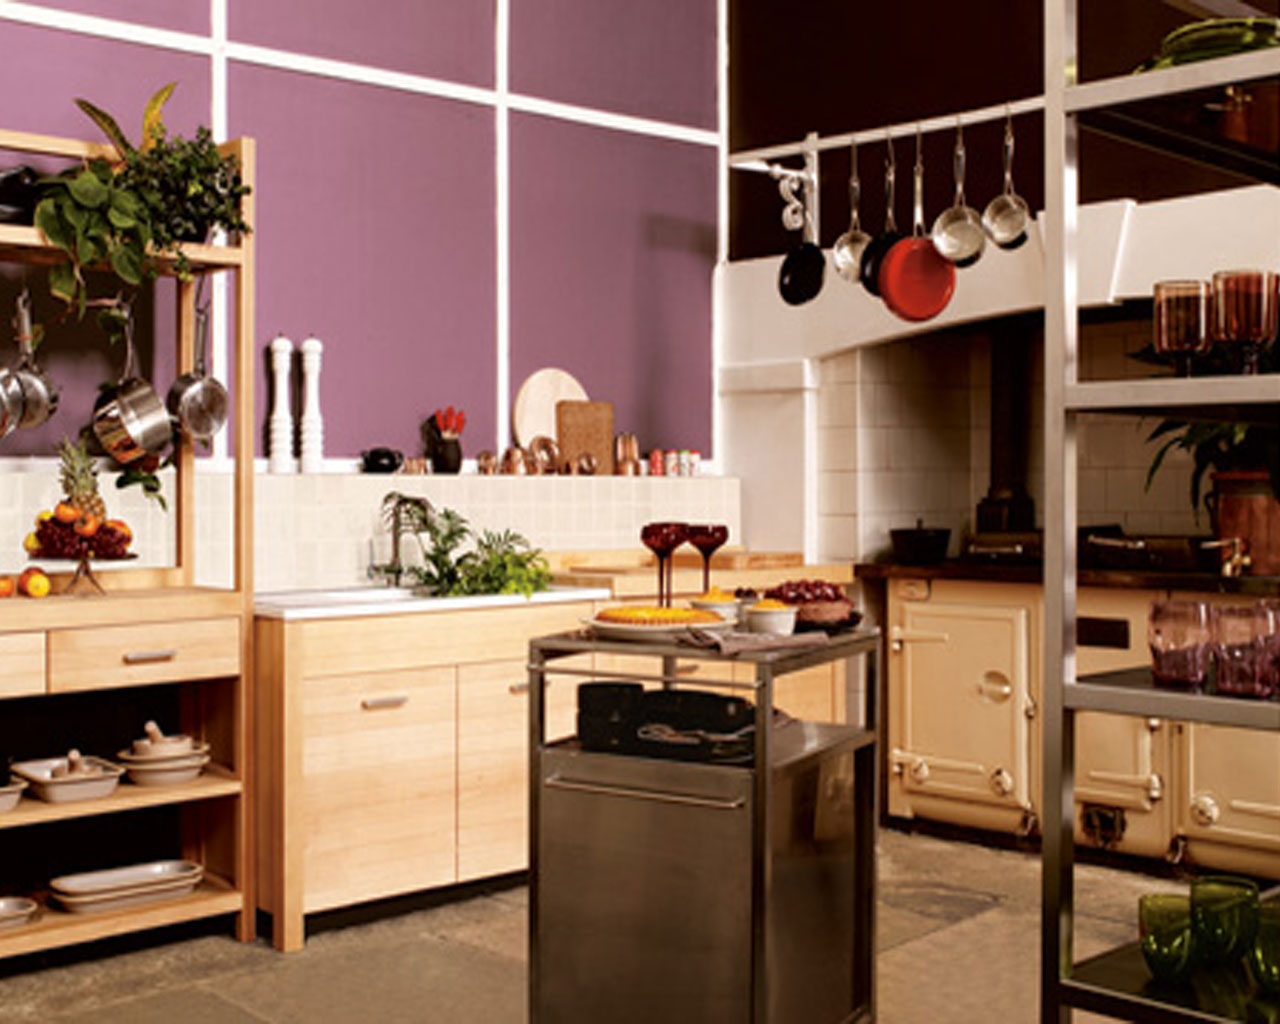 5 Hot Home Decorating trends in 2013  5 Hot Home Decorating trends in 2013 cozy kitchen with purple walls ideas design